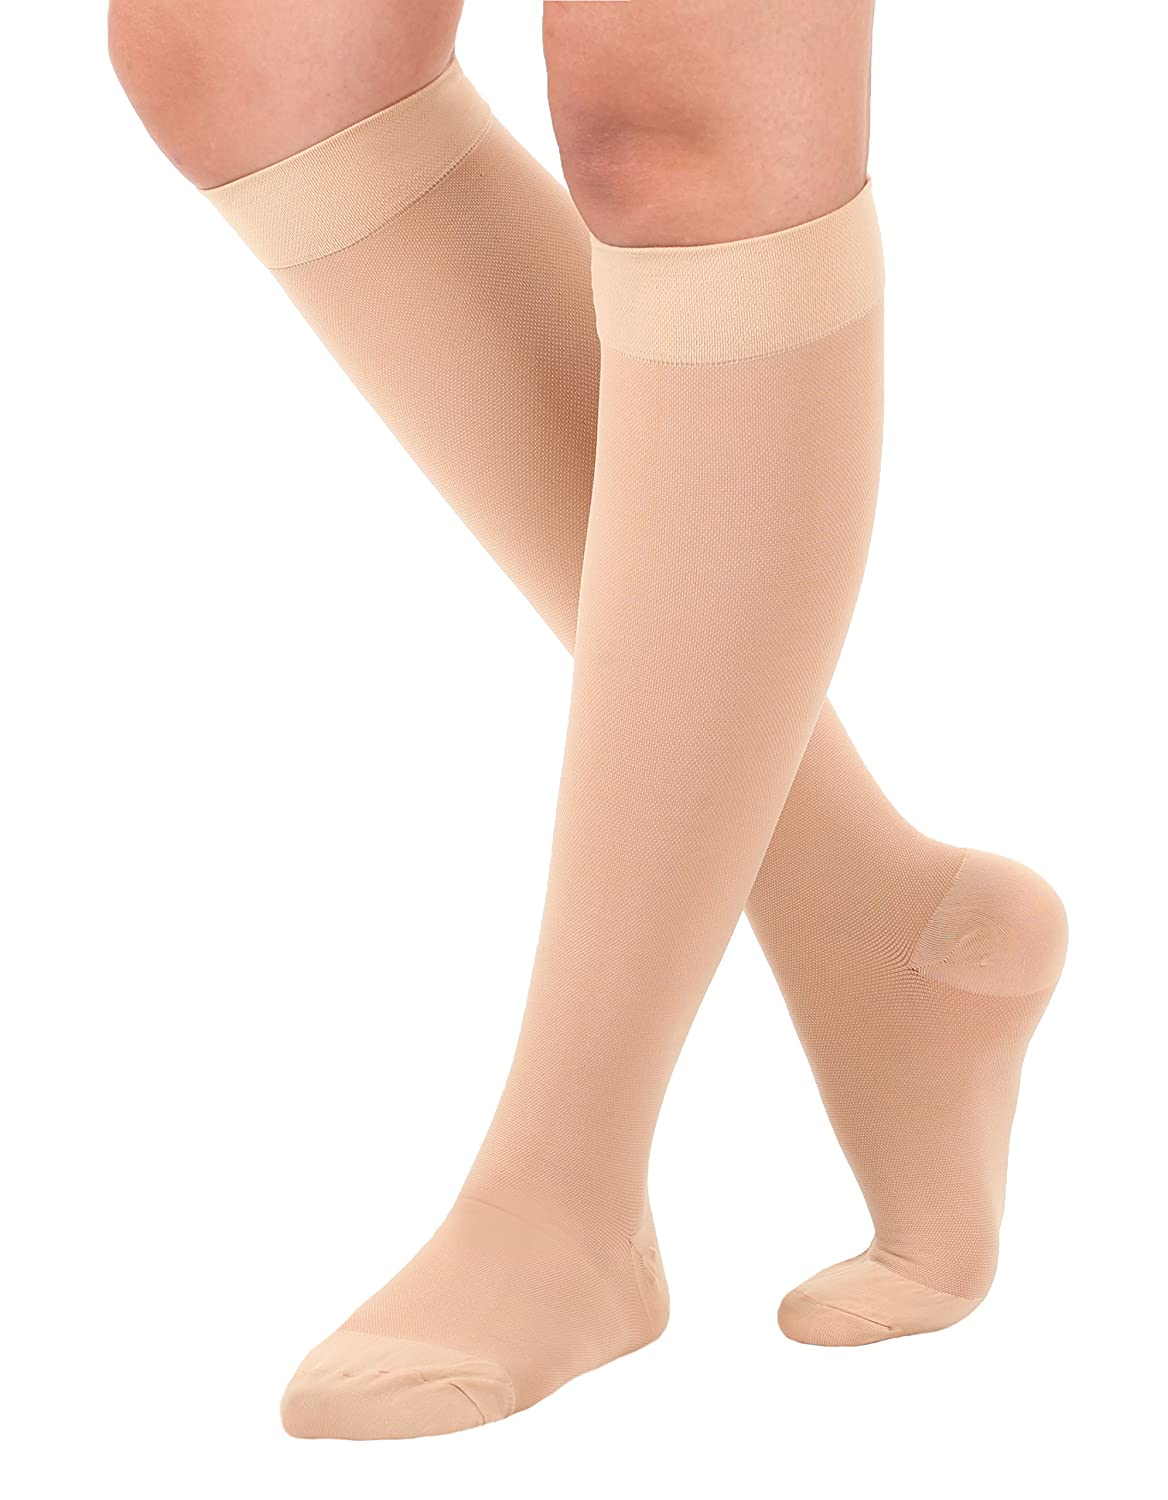 Made in USA - Surgical Opaque Knee-Hi Firm Support Closed Toe 20-30mmHg Graduated compression Surgical Weight (Medium, Beige) by Mojo Compression socks B00GFWQ05G